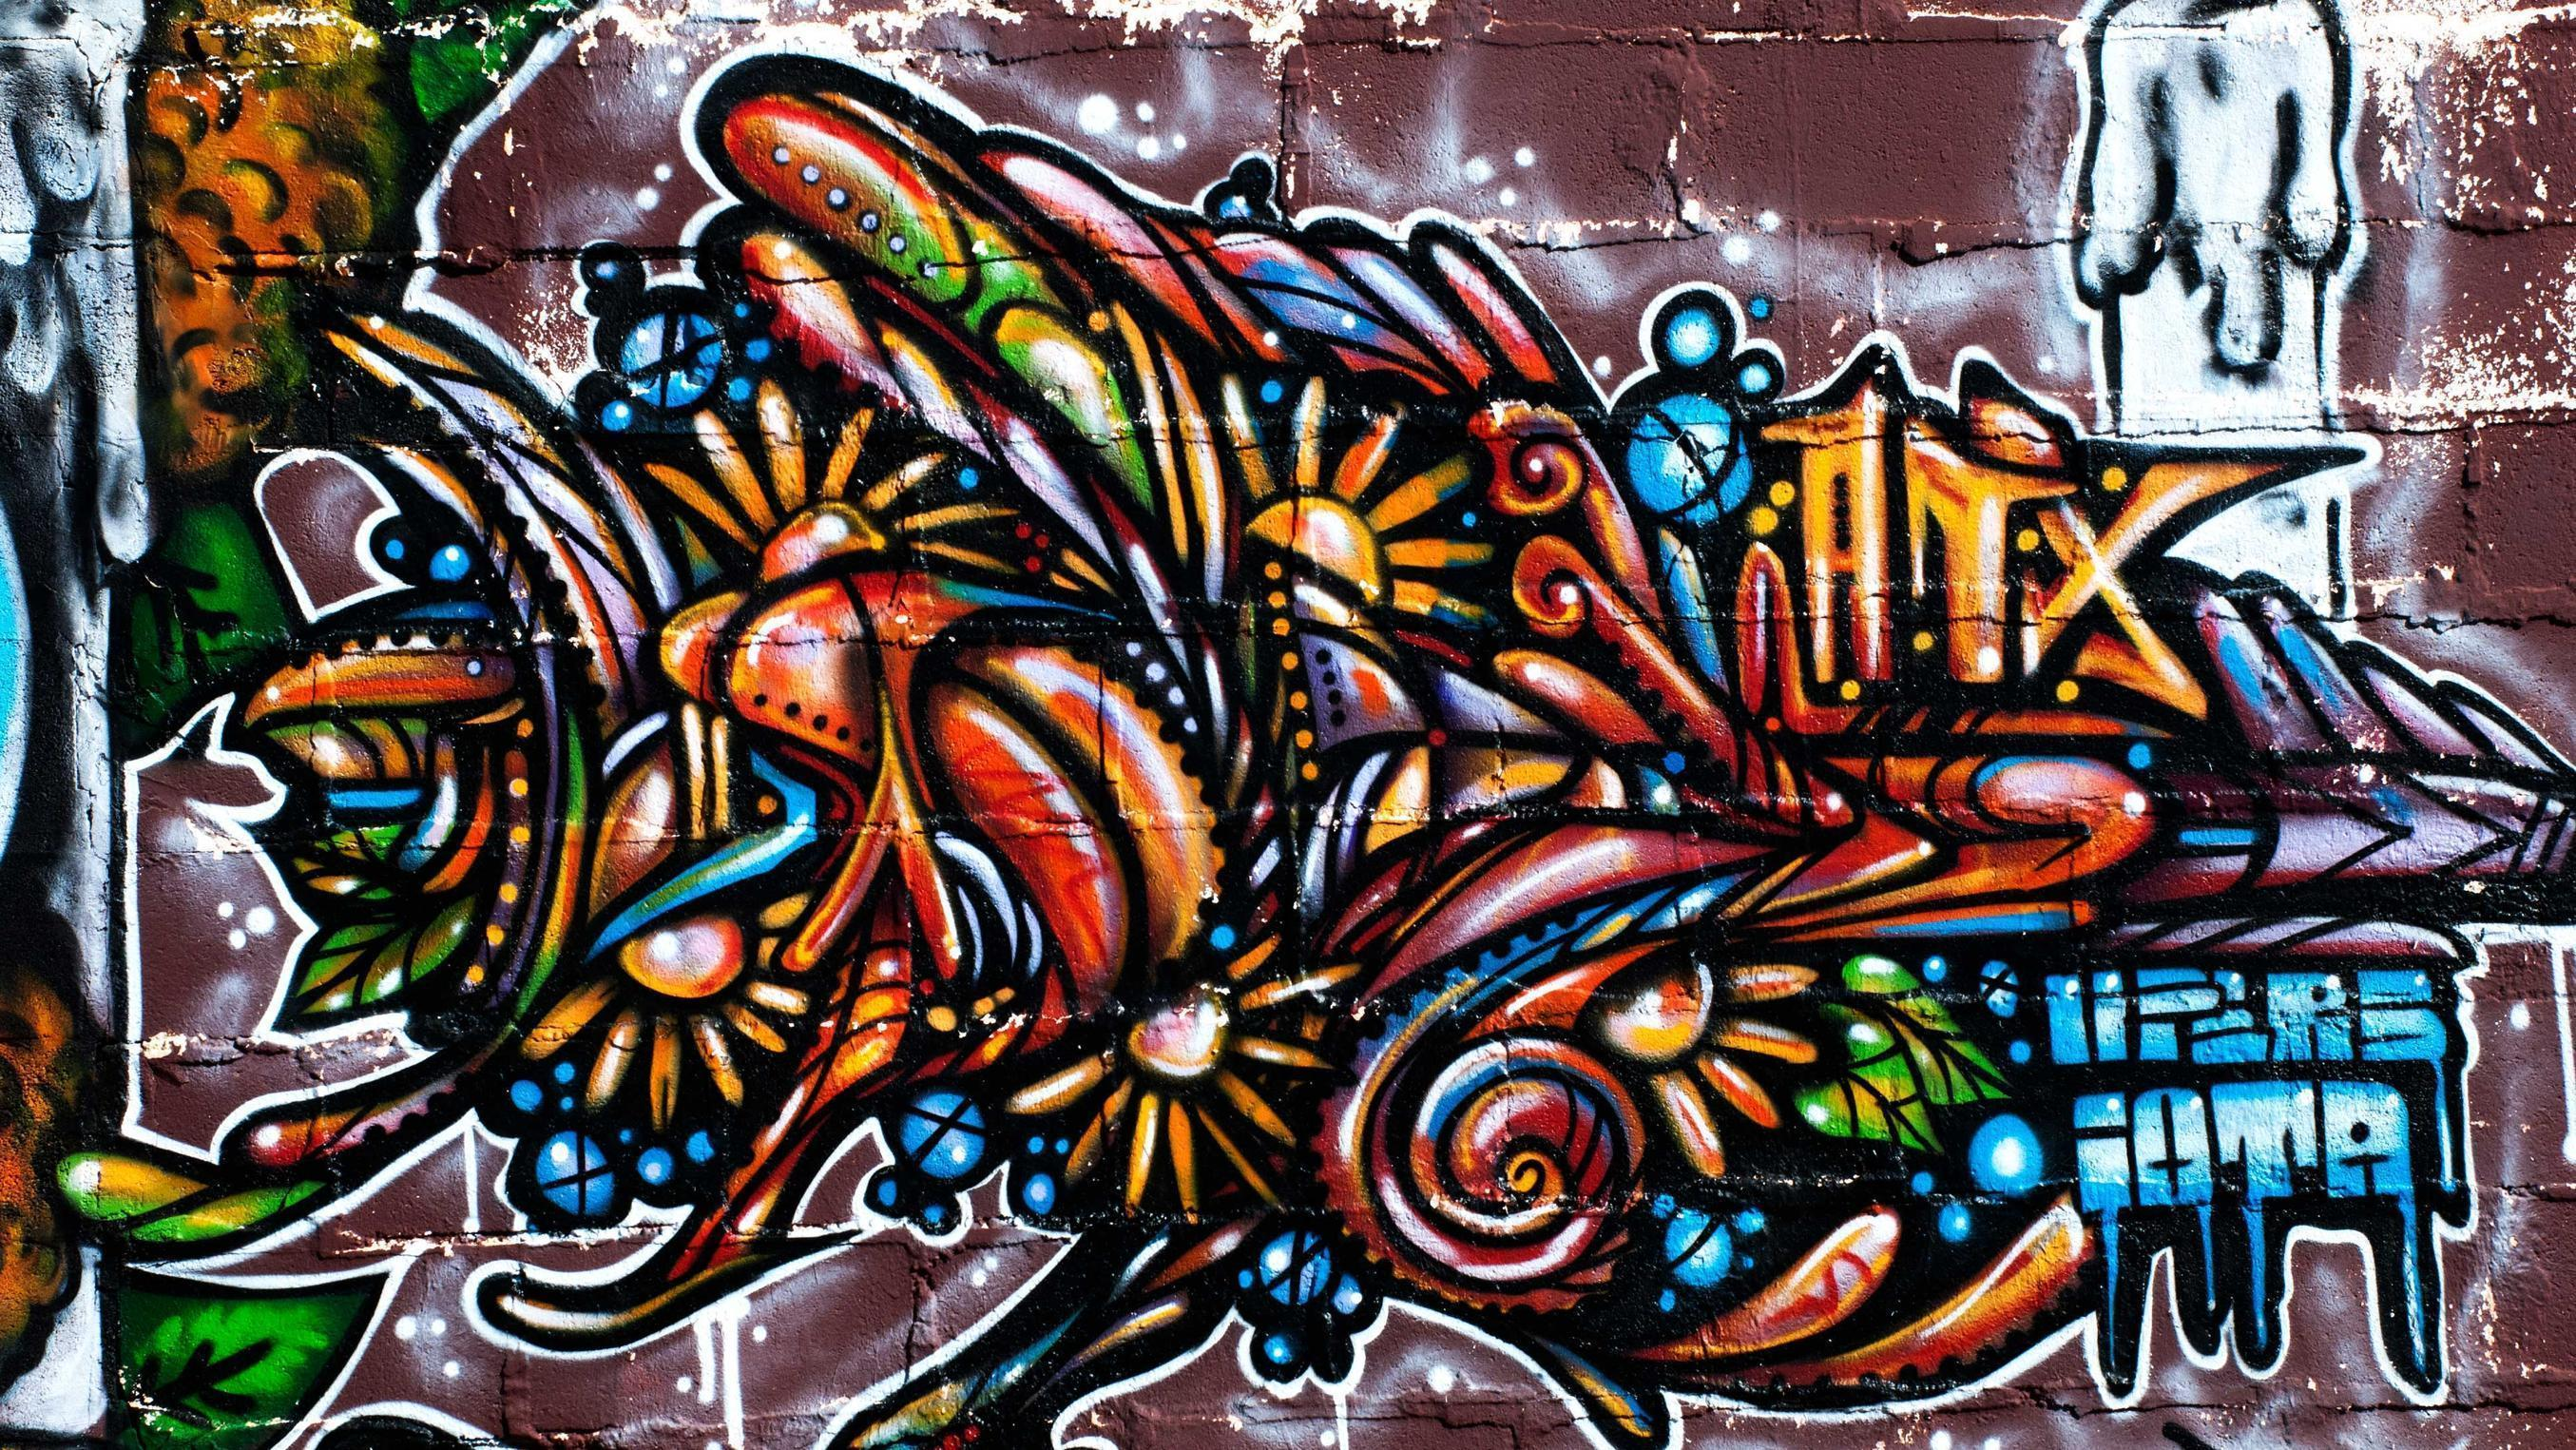 Cool graffiti wallpapers 6102 wallpapers hd hdpictureimages